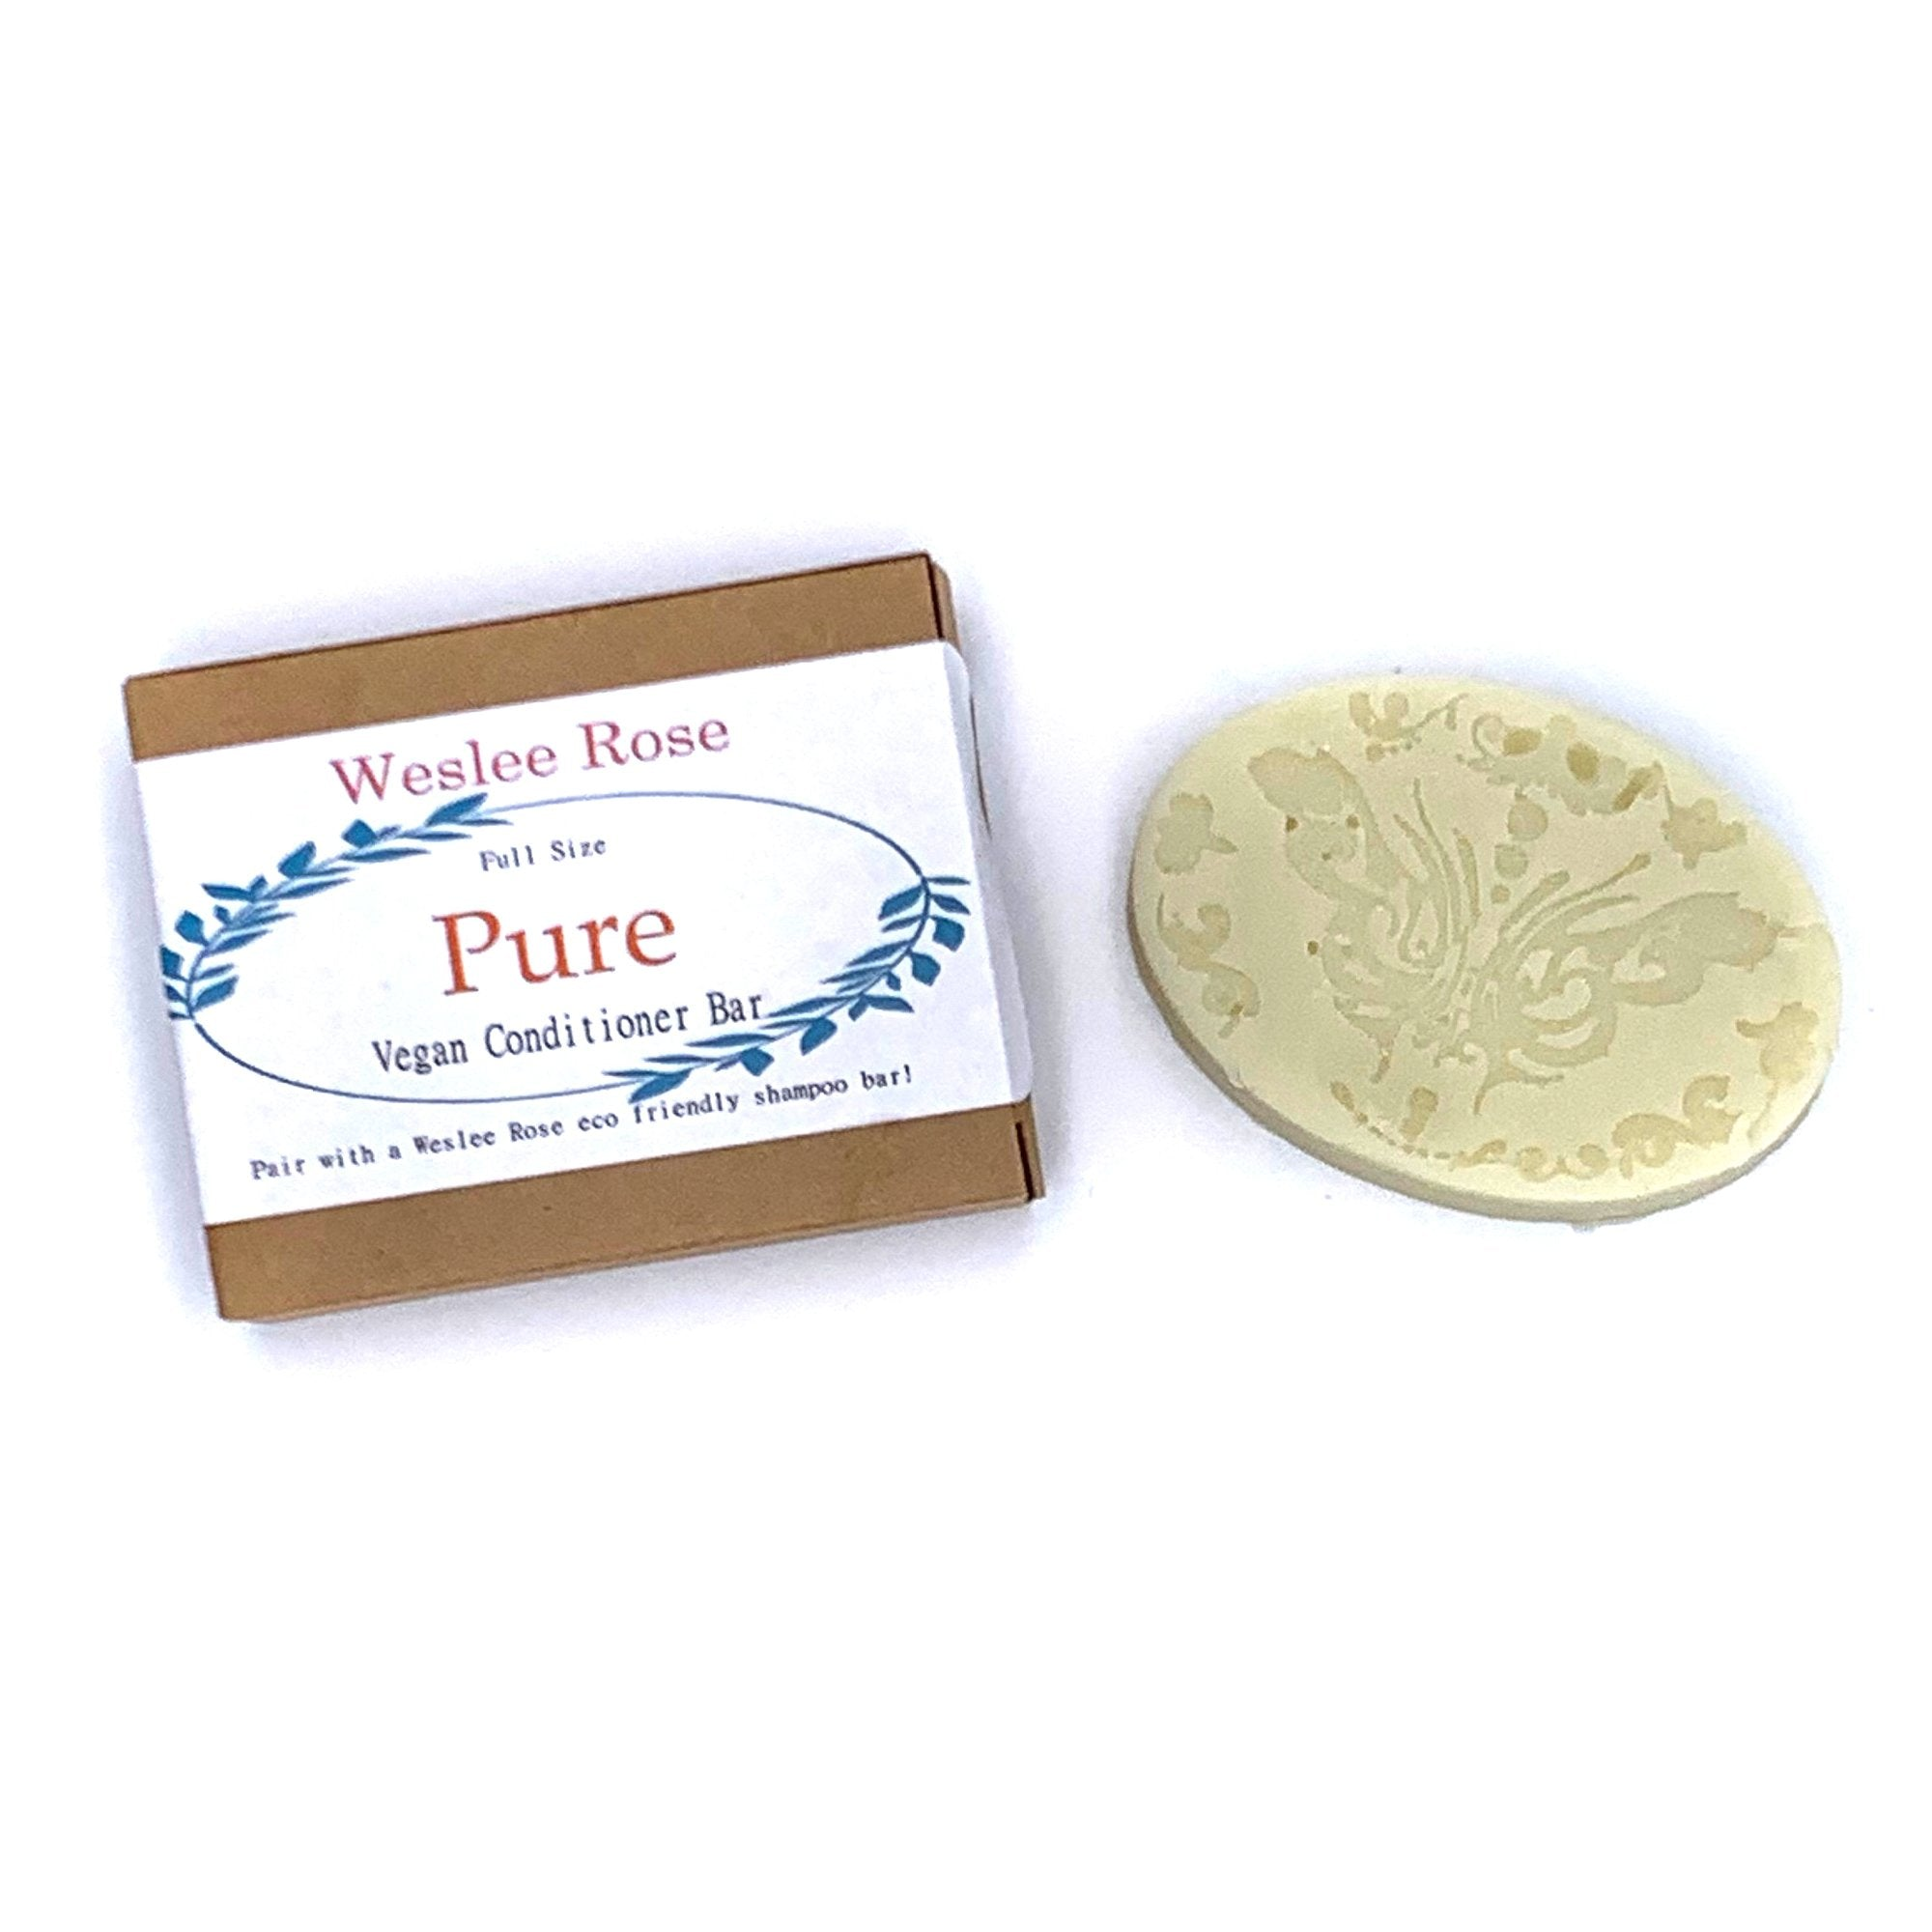 Eco friendly, all natural, conditioner bar soap for a zero waste lifestyle.PURE no added fragrance or scents.